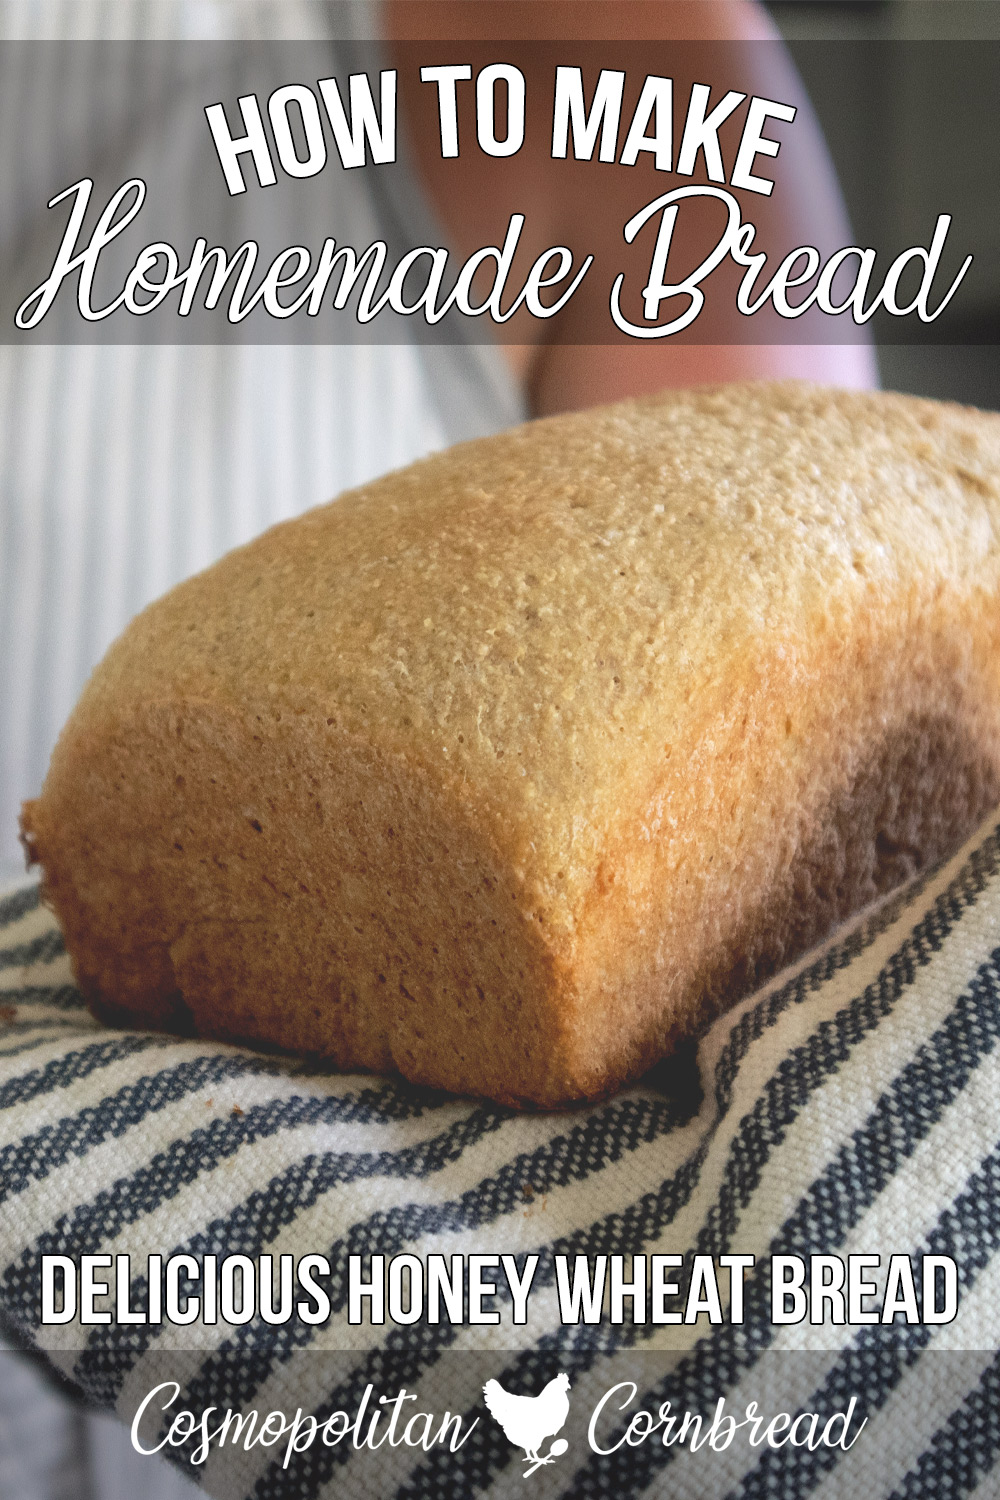 How to make Homemade Honey Wheat Bread with freshly ground wheat. The BEST homemade bread recipe!